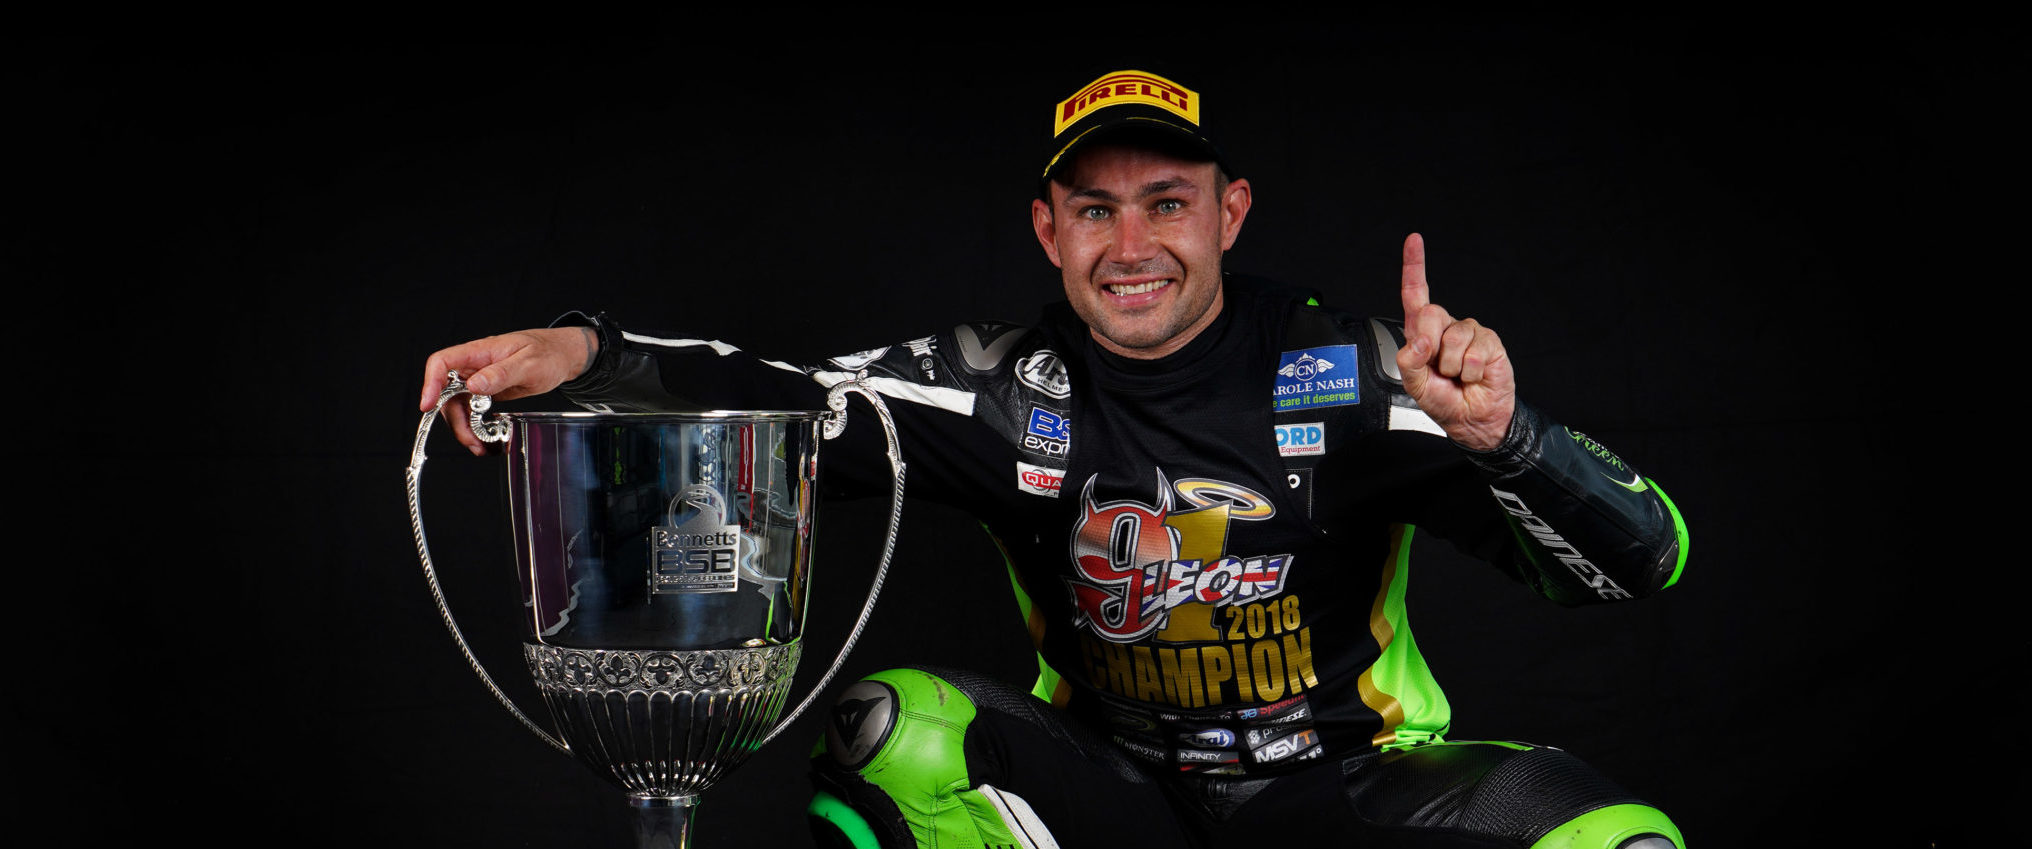 Haslam with his well-deserved BSB trophy credit Tim Keeton (Impact Images Photography)